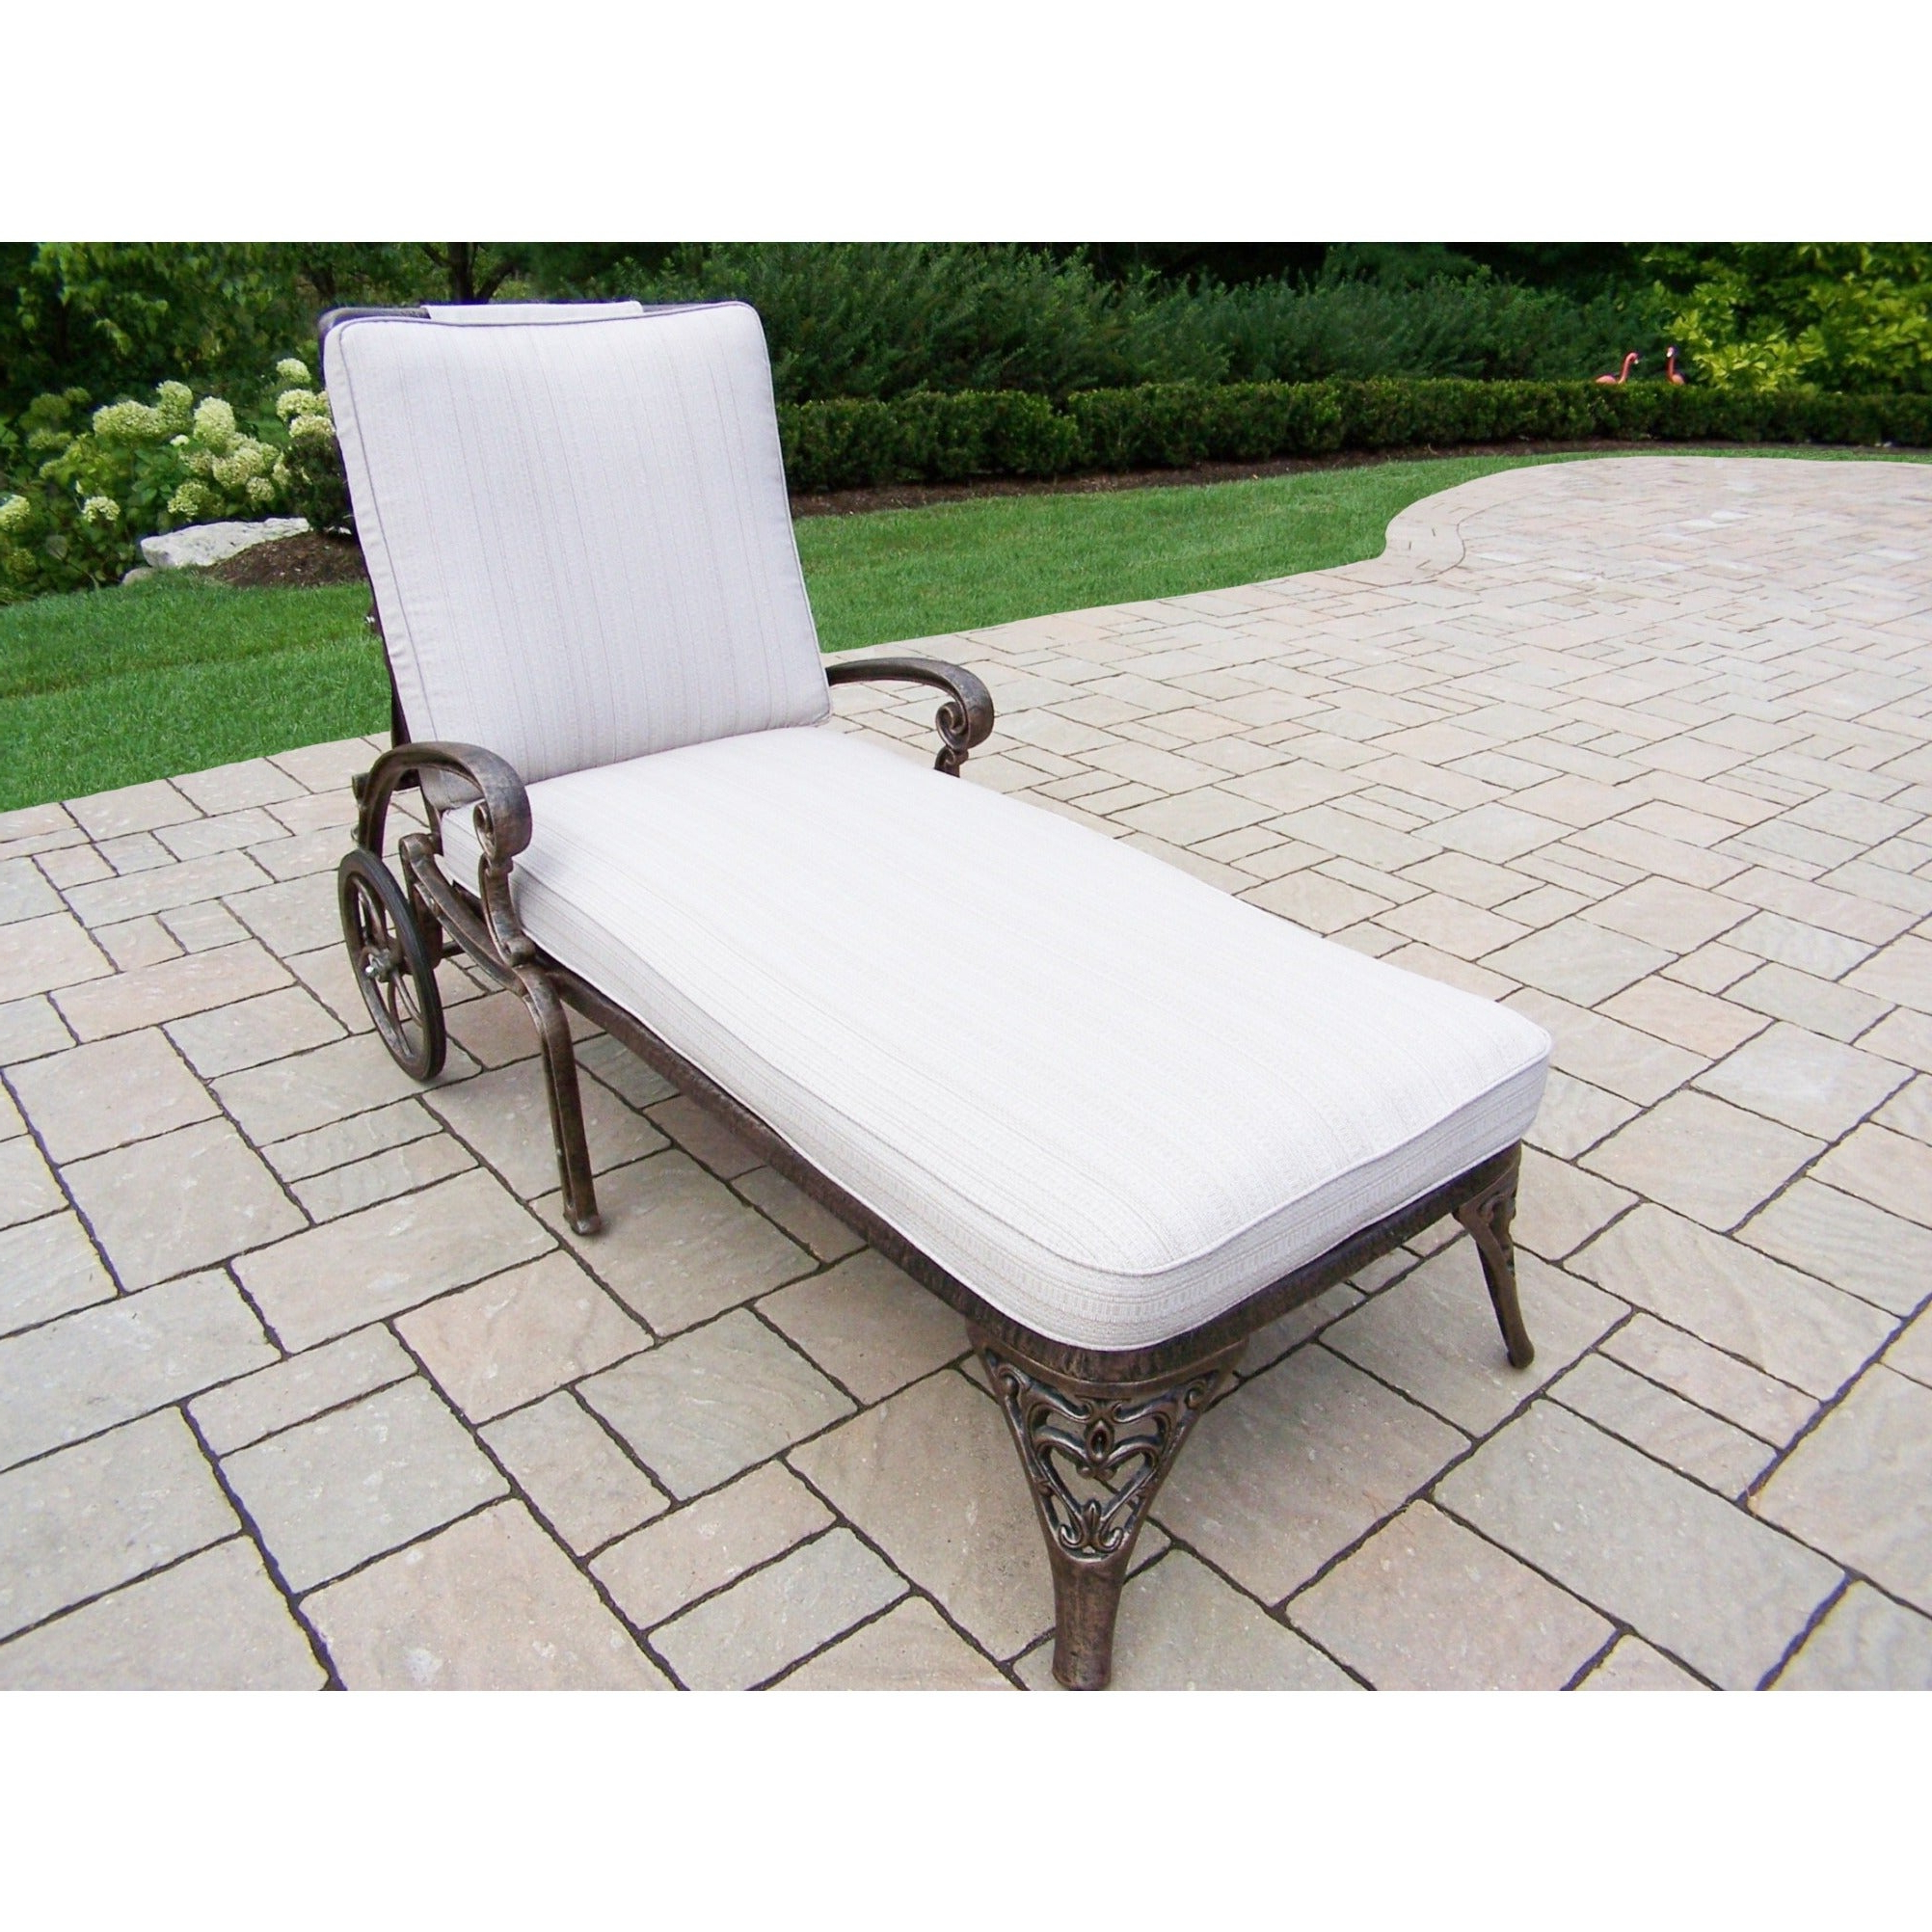 Dakota Cushioned Cast Aluminum Chaise Lounge With Wheels Within Widely Used Lattice Outdoor Patio Pool Chaise Lounges With Wheels And Cushion (View 8 of 25)